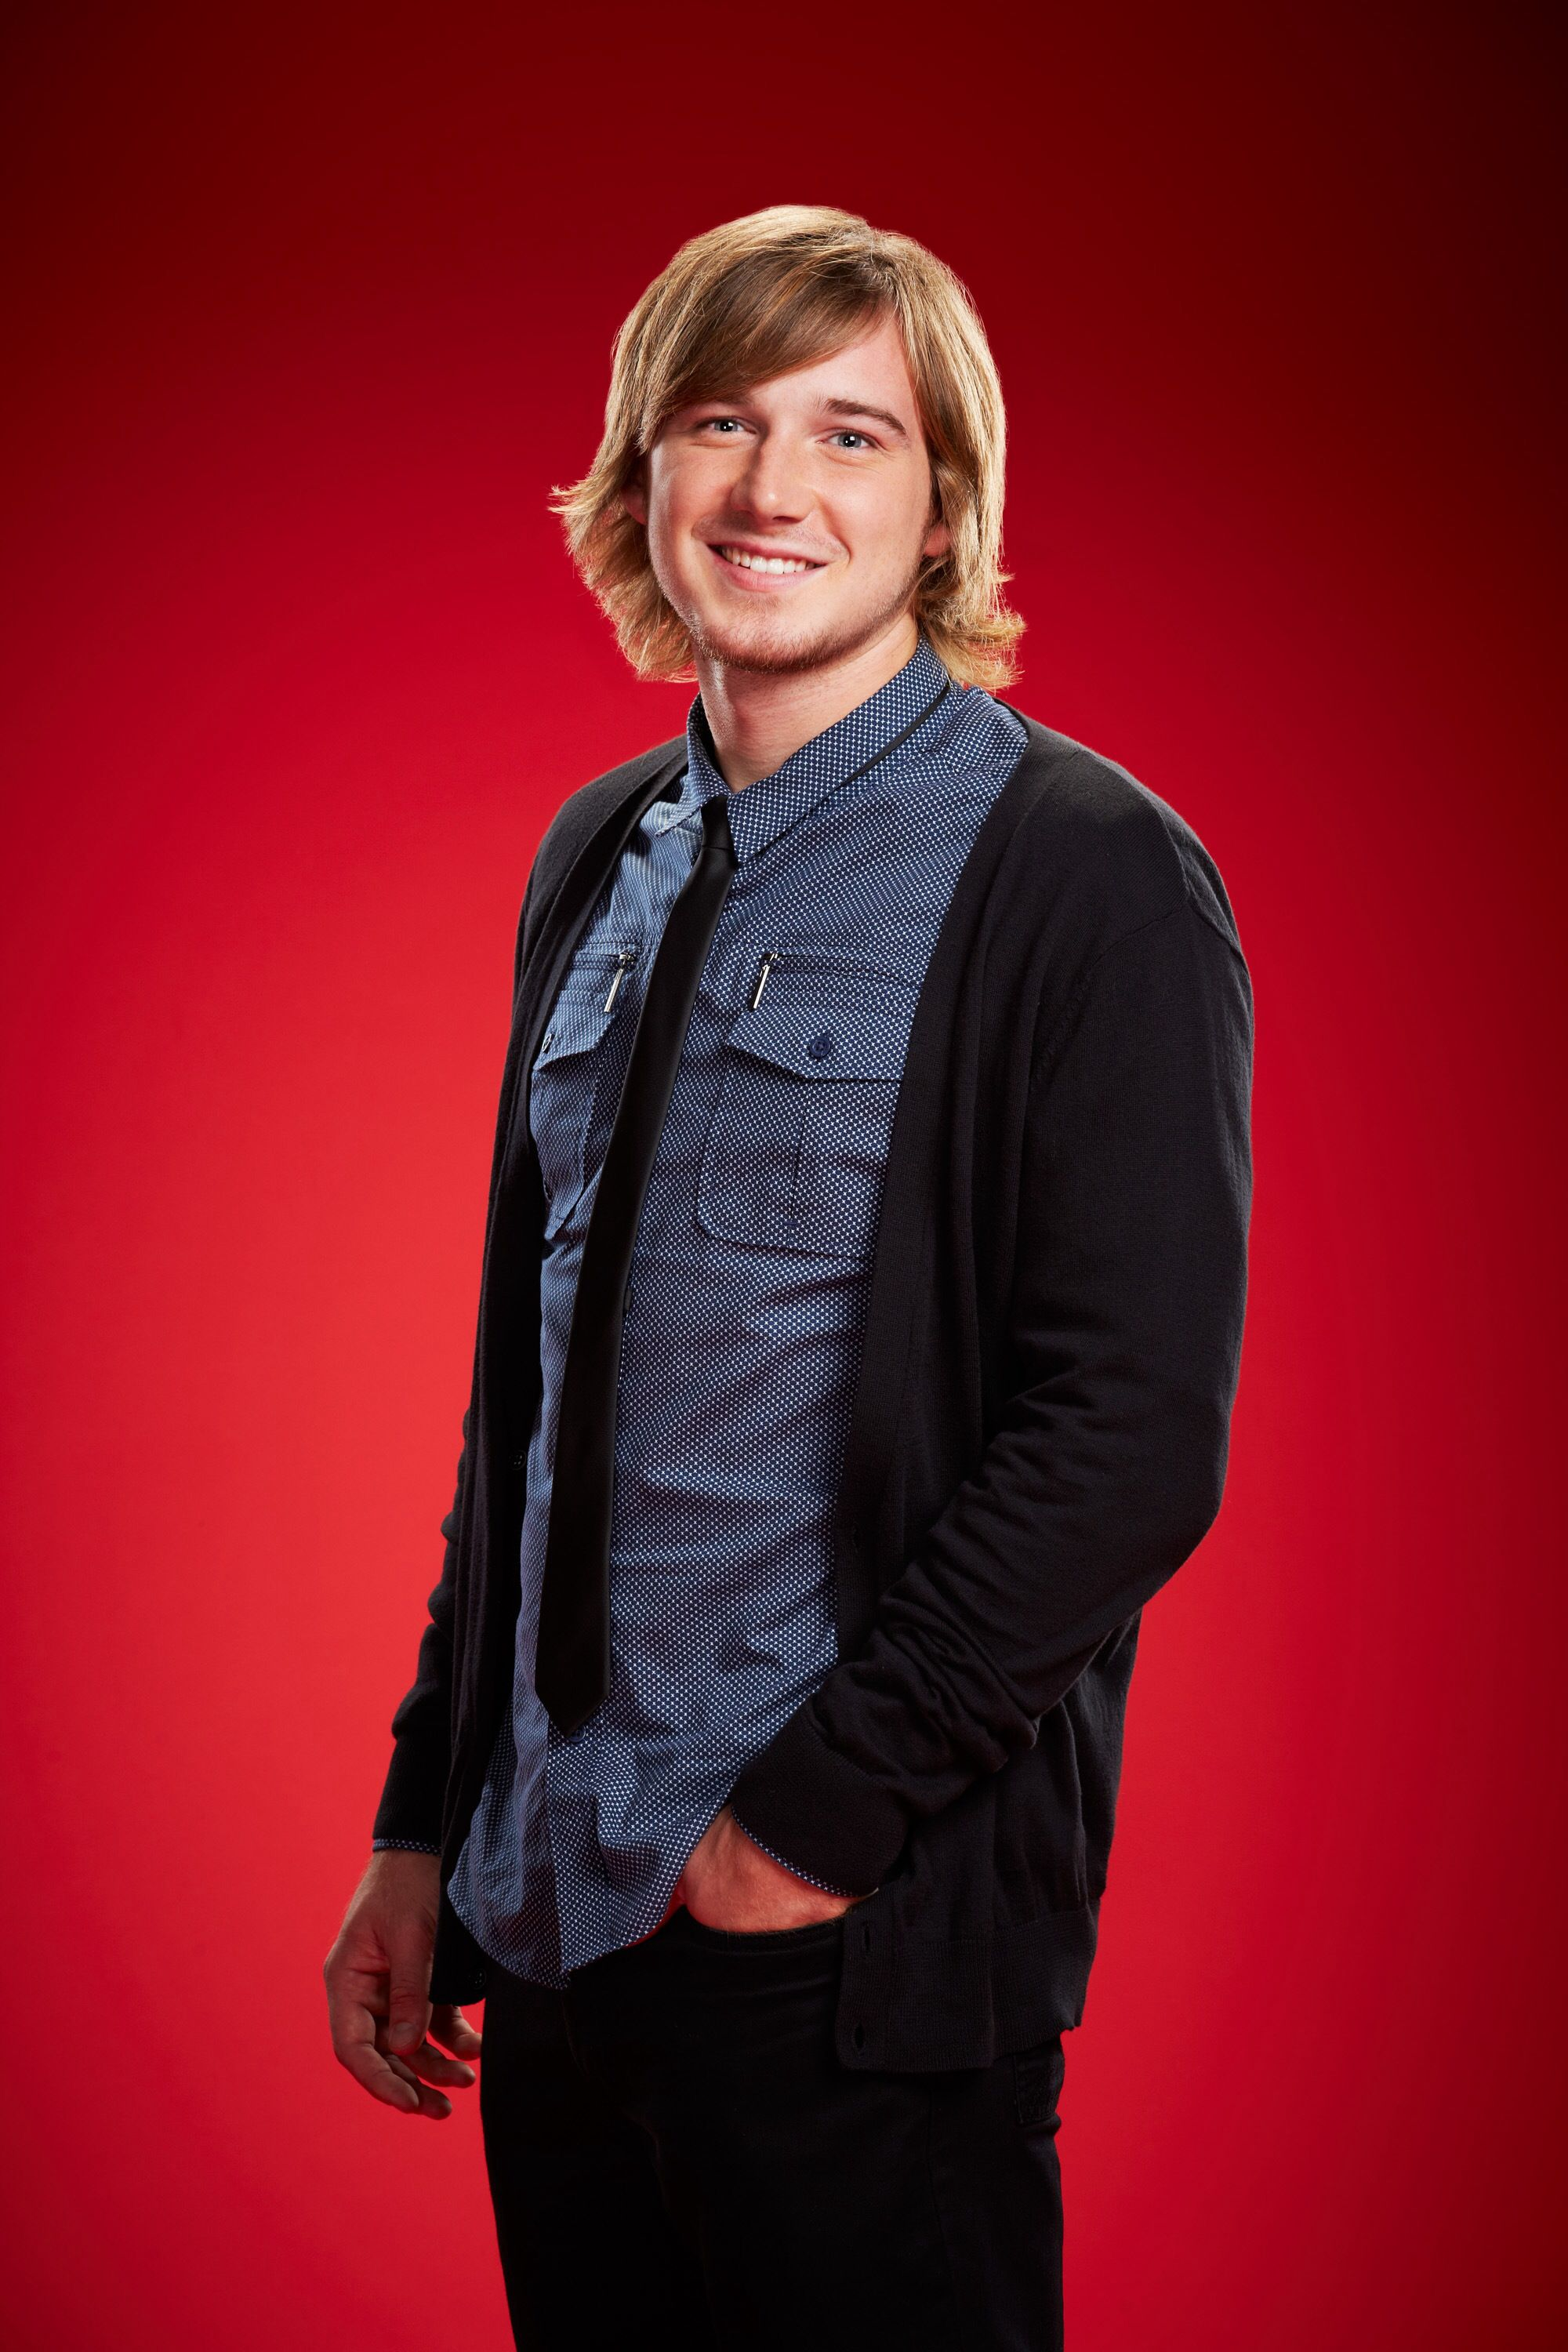 Morgan Wallen Elimaned The Voice Nbc The Voice Reality Television